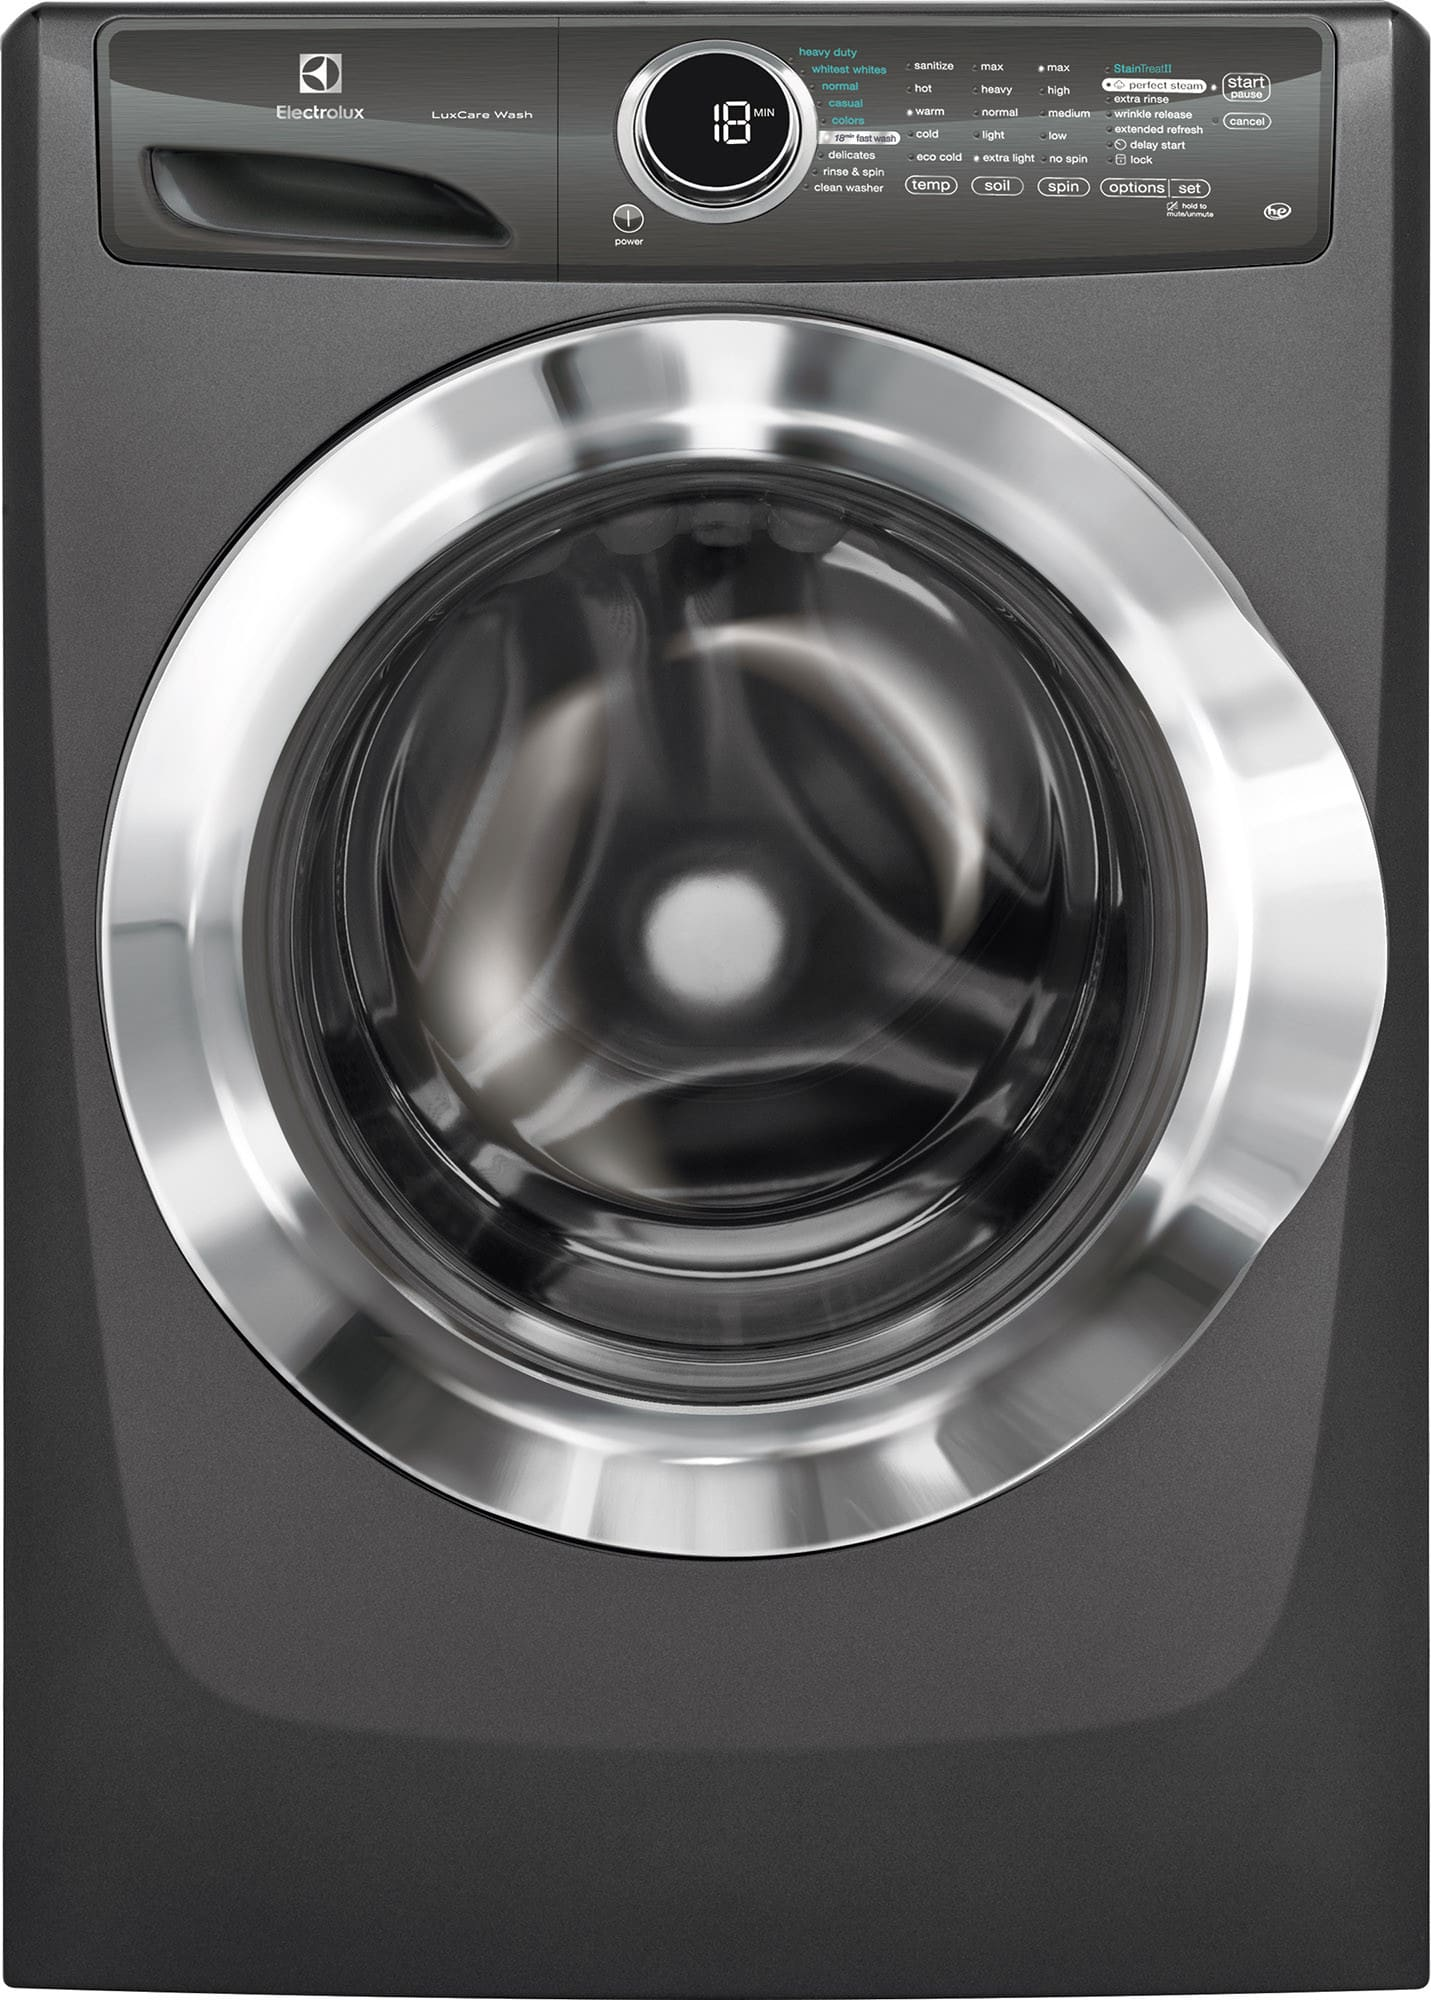 new res dryer pedestal electrolux load hi introduces us frigidaire lo and download washer front